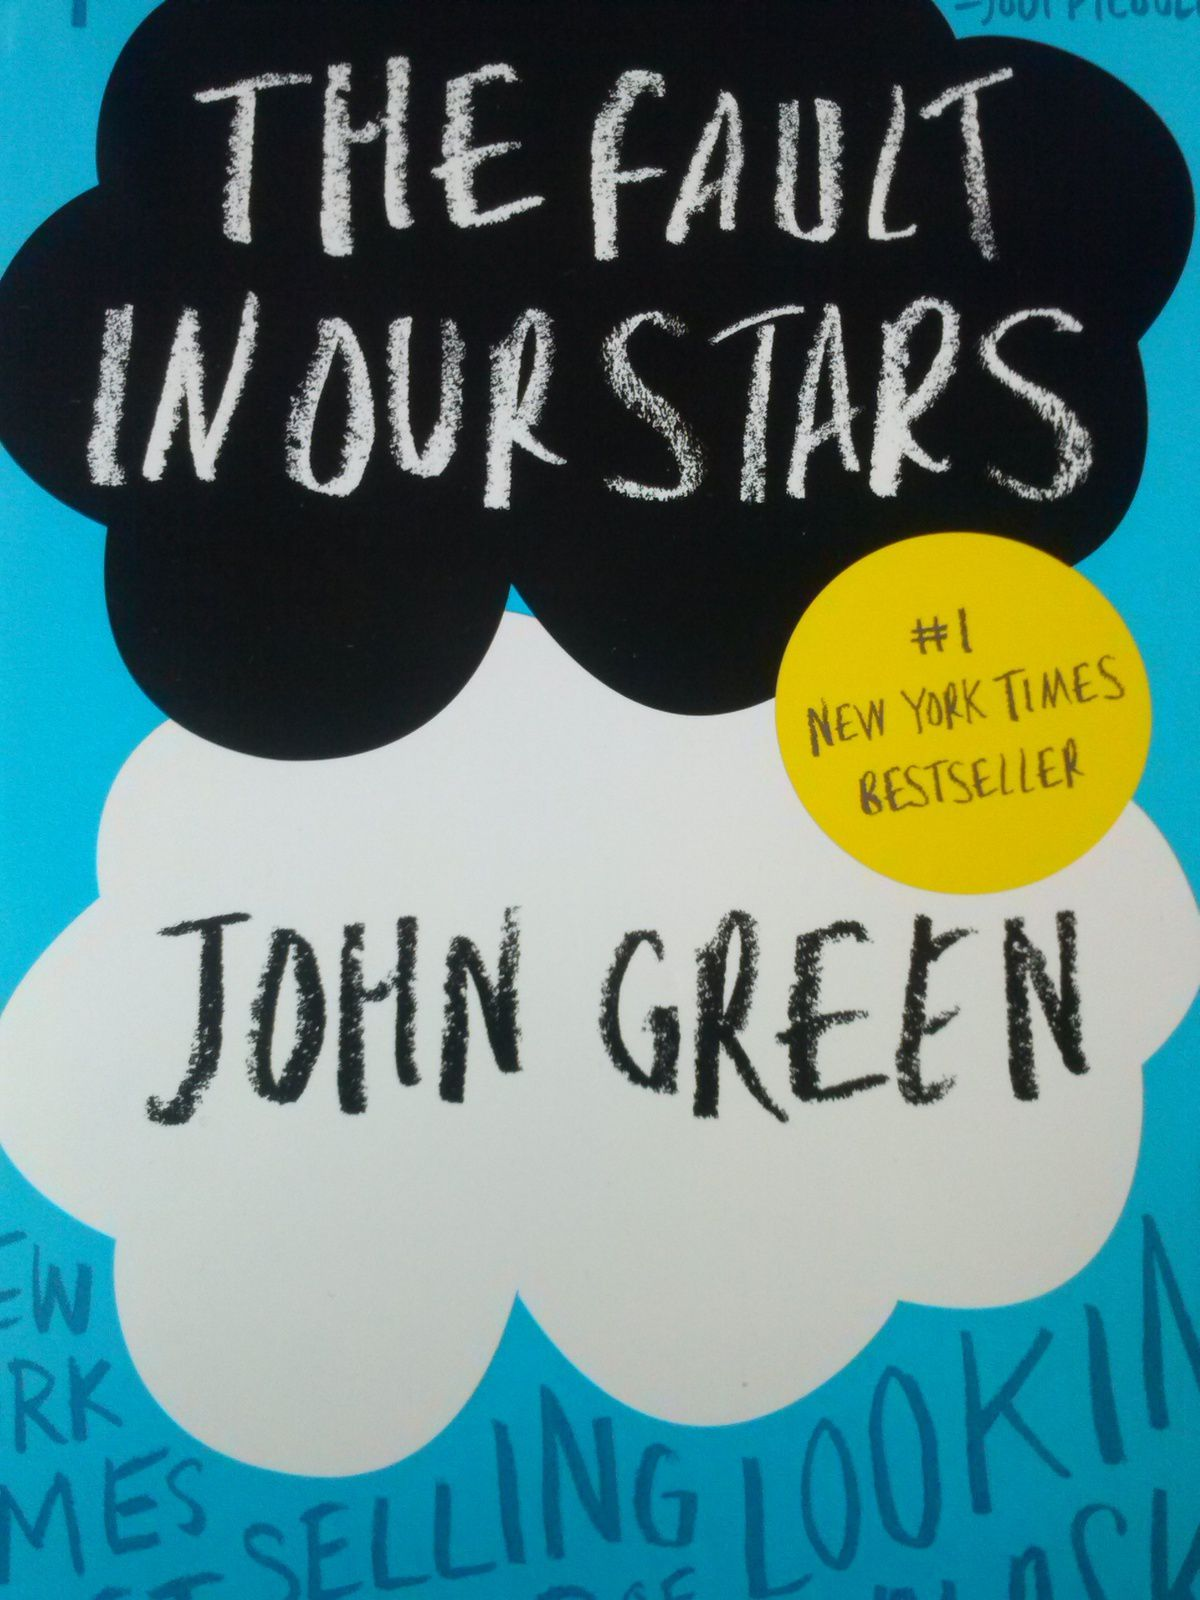 Buchbewertung: 'The Fault in our Stars'